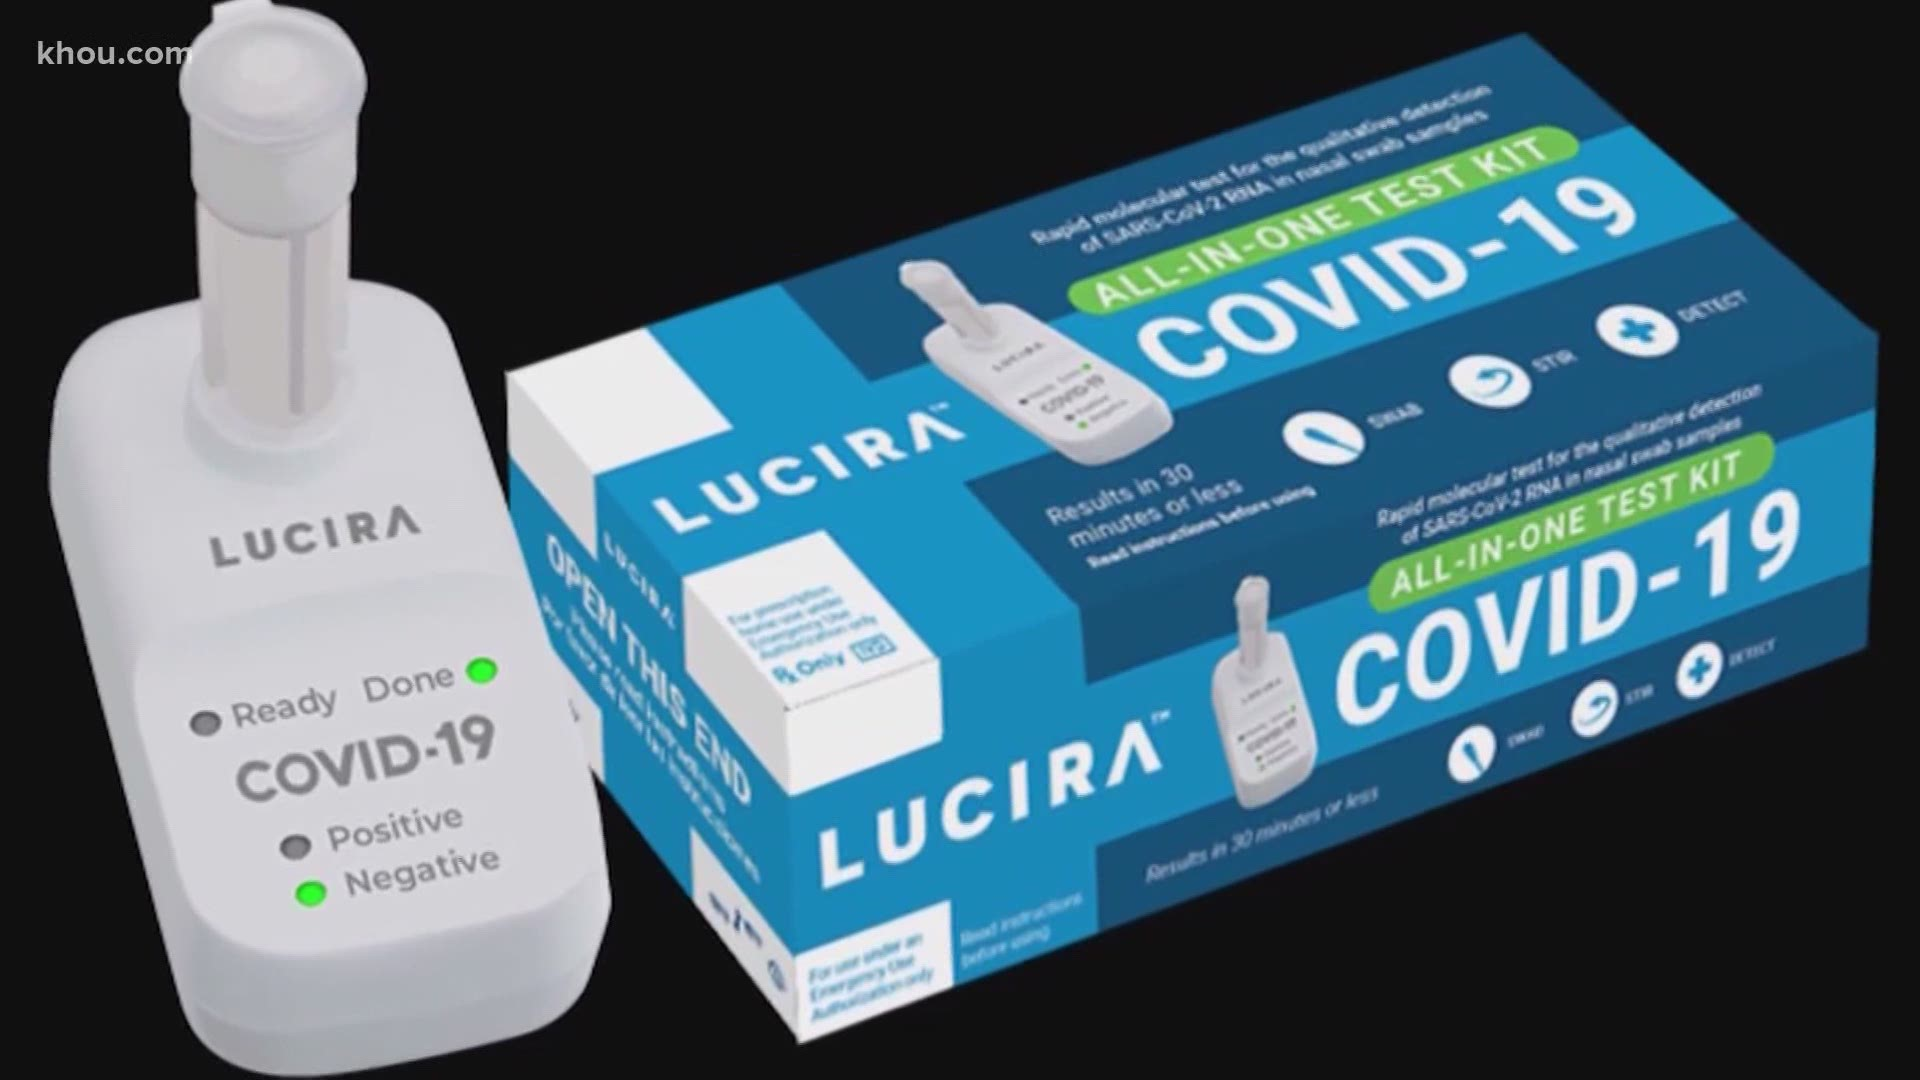 Fda Authorizes First At Home Covid 19 Test Kit As Cases Surge Khou Com